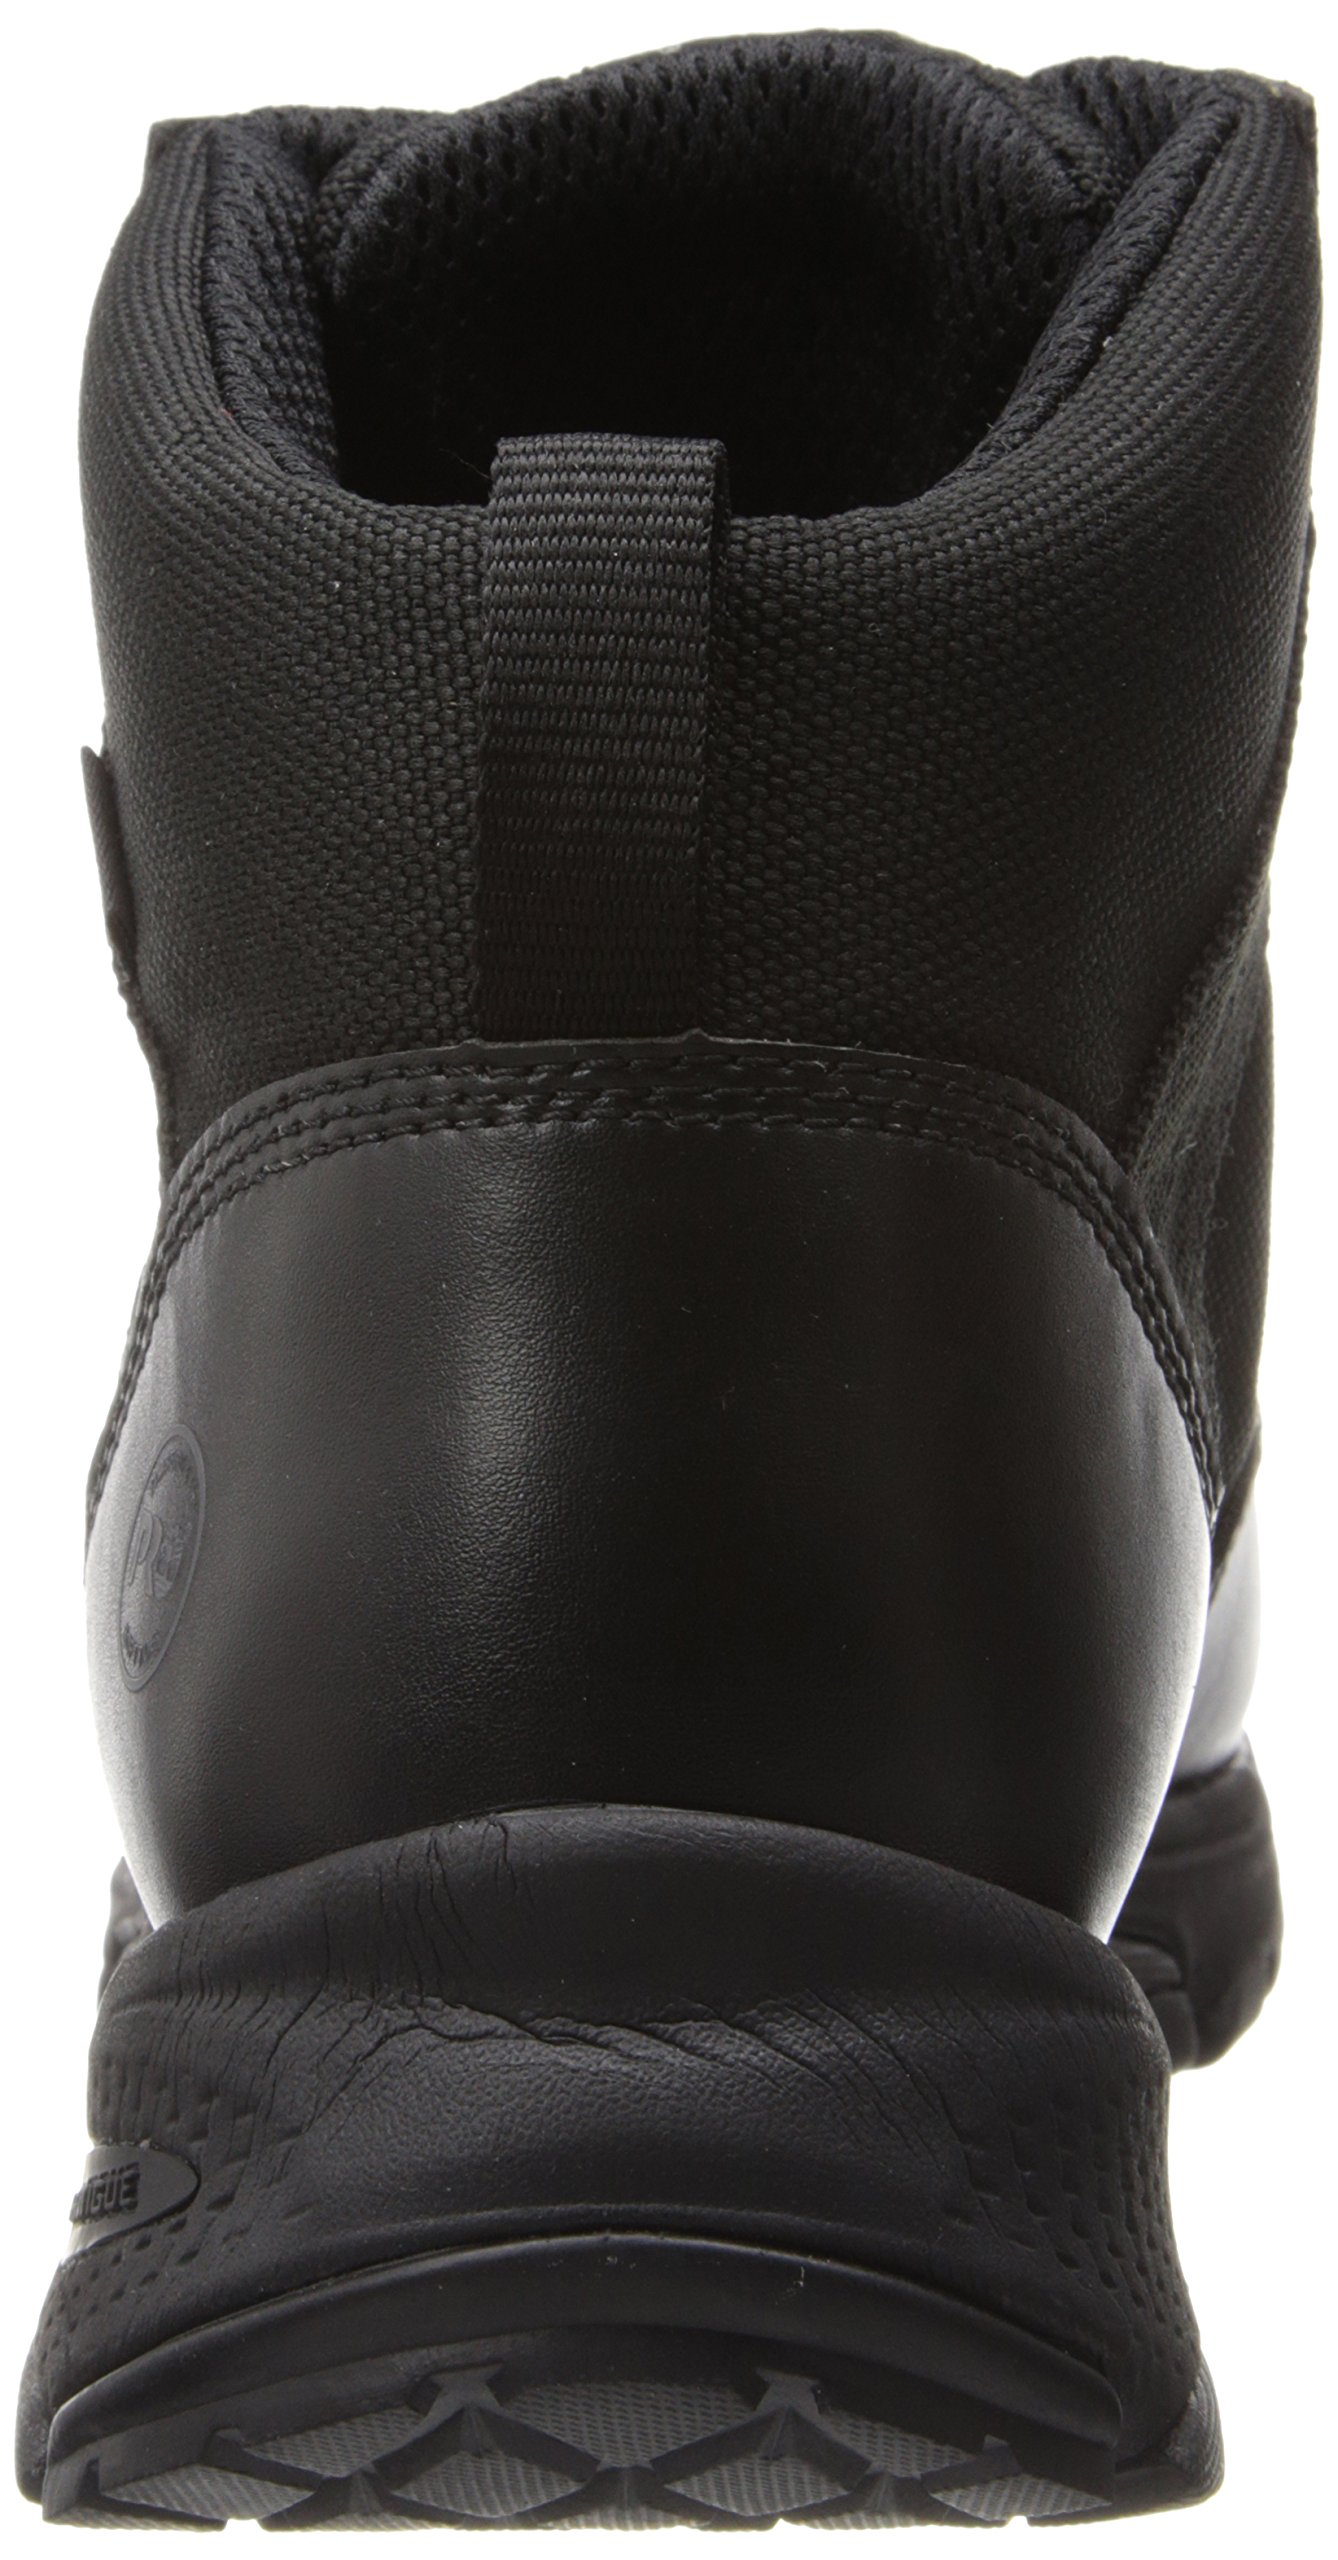 Timberland PRO Men's 5 Inch Valor Soft Toe Waterproof Duty Boot,Black Smooth With Textile,11.5 M US by Timberland PRO (Image #2)